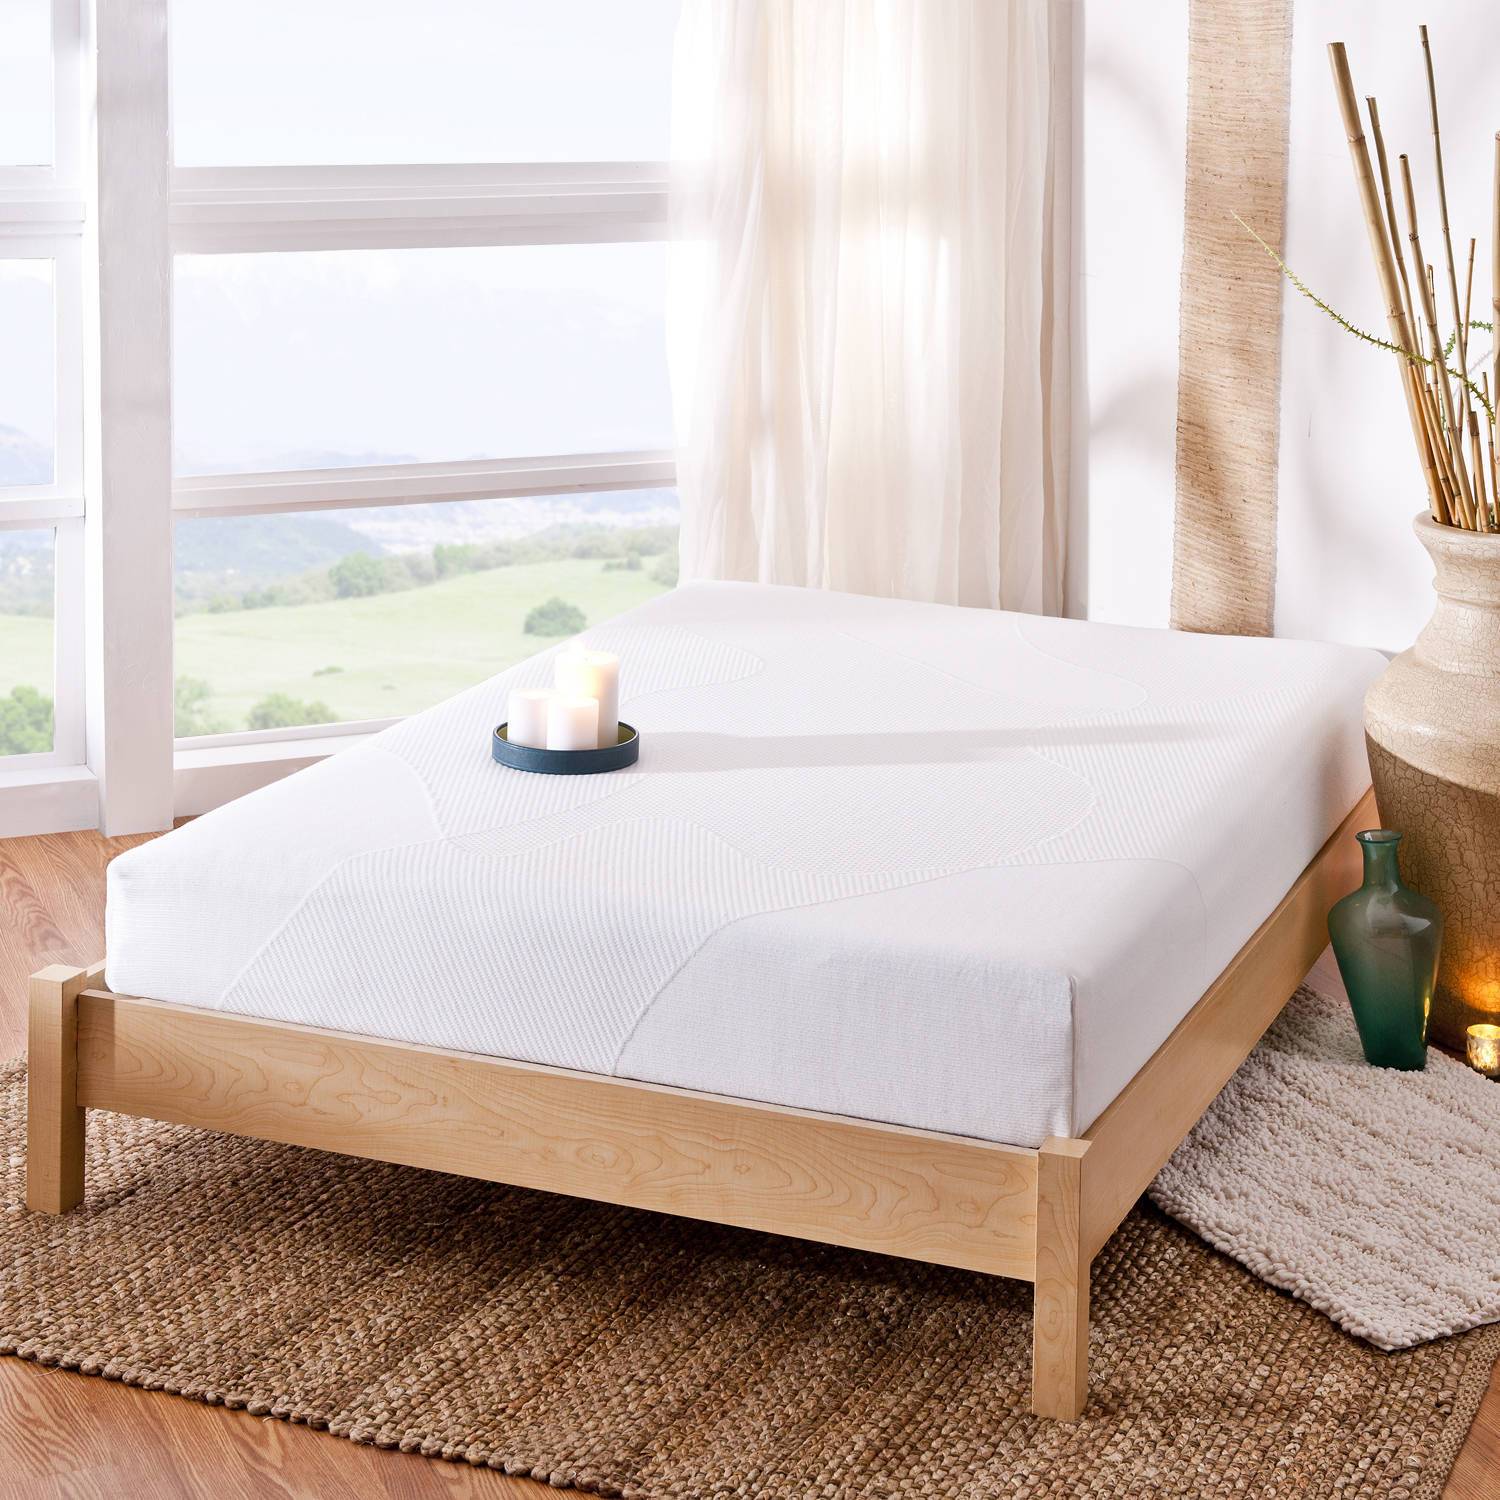 inch overstock home aveline size full free gel foam garden shipping memory mattress infused product today